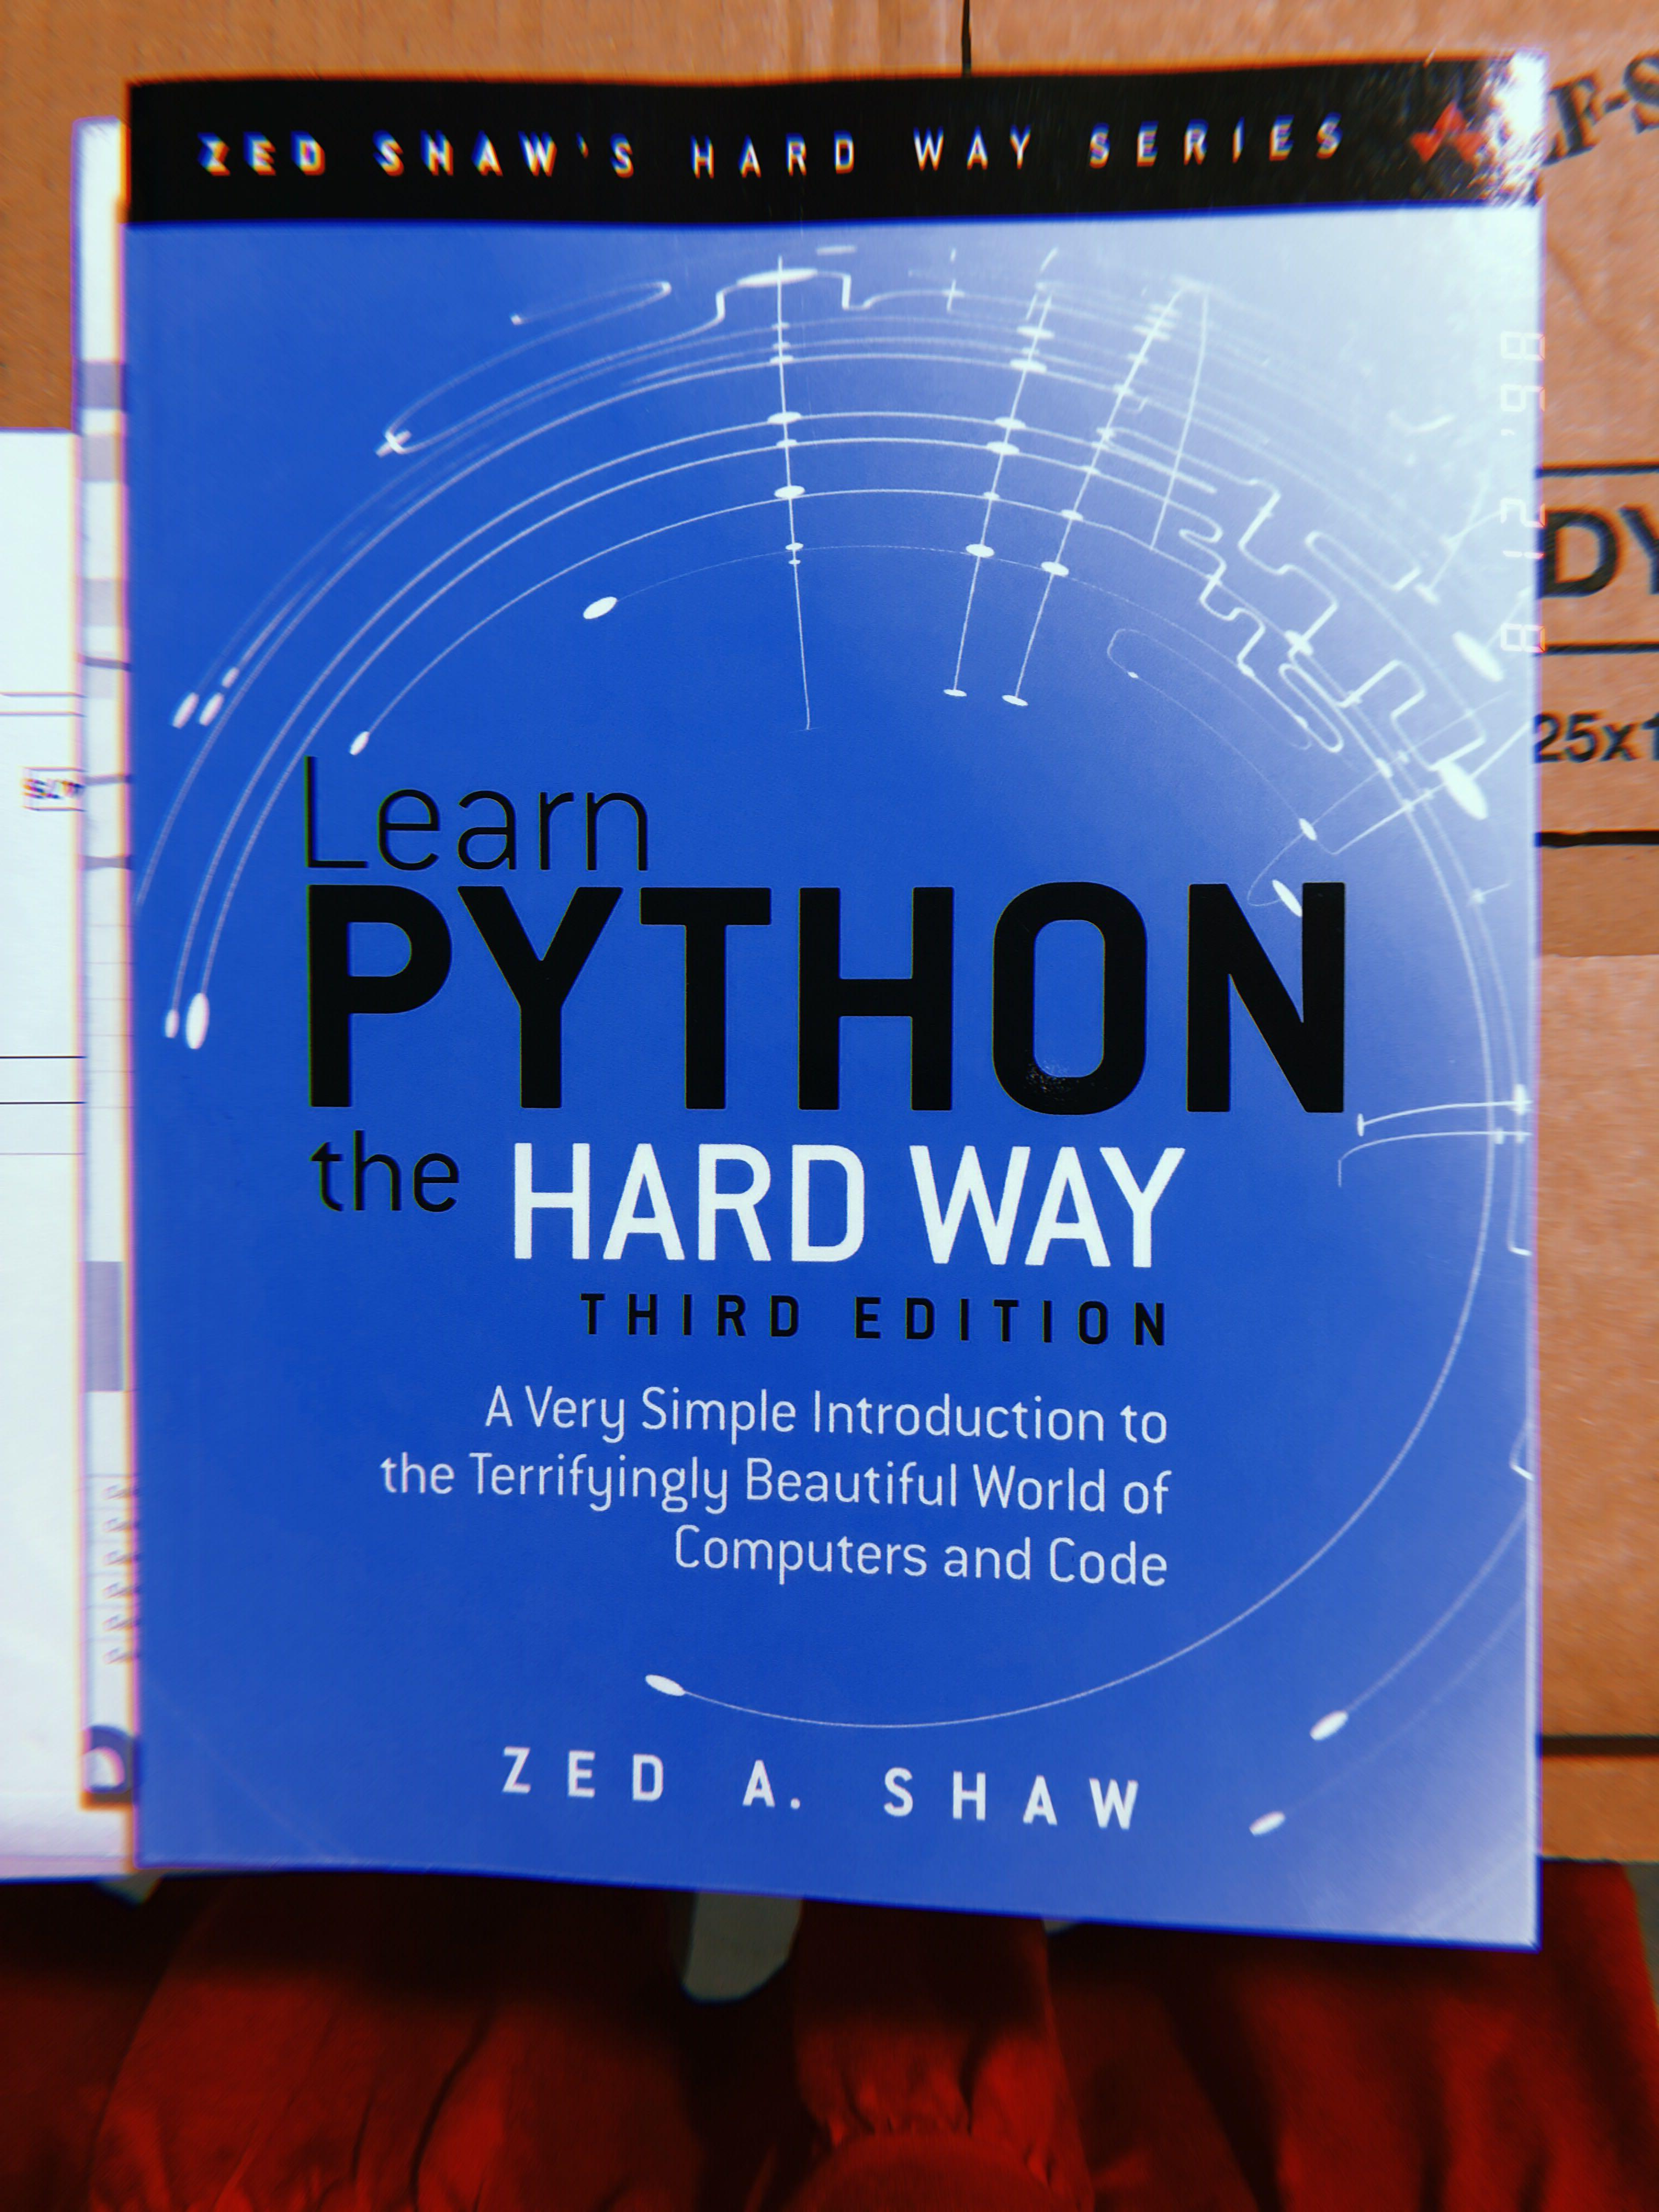 NEW LEARN PYTHON THE HARD WAY 3rd EDITION, Books